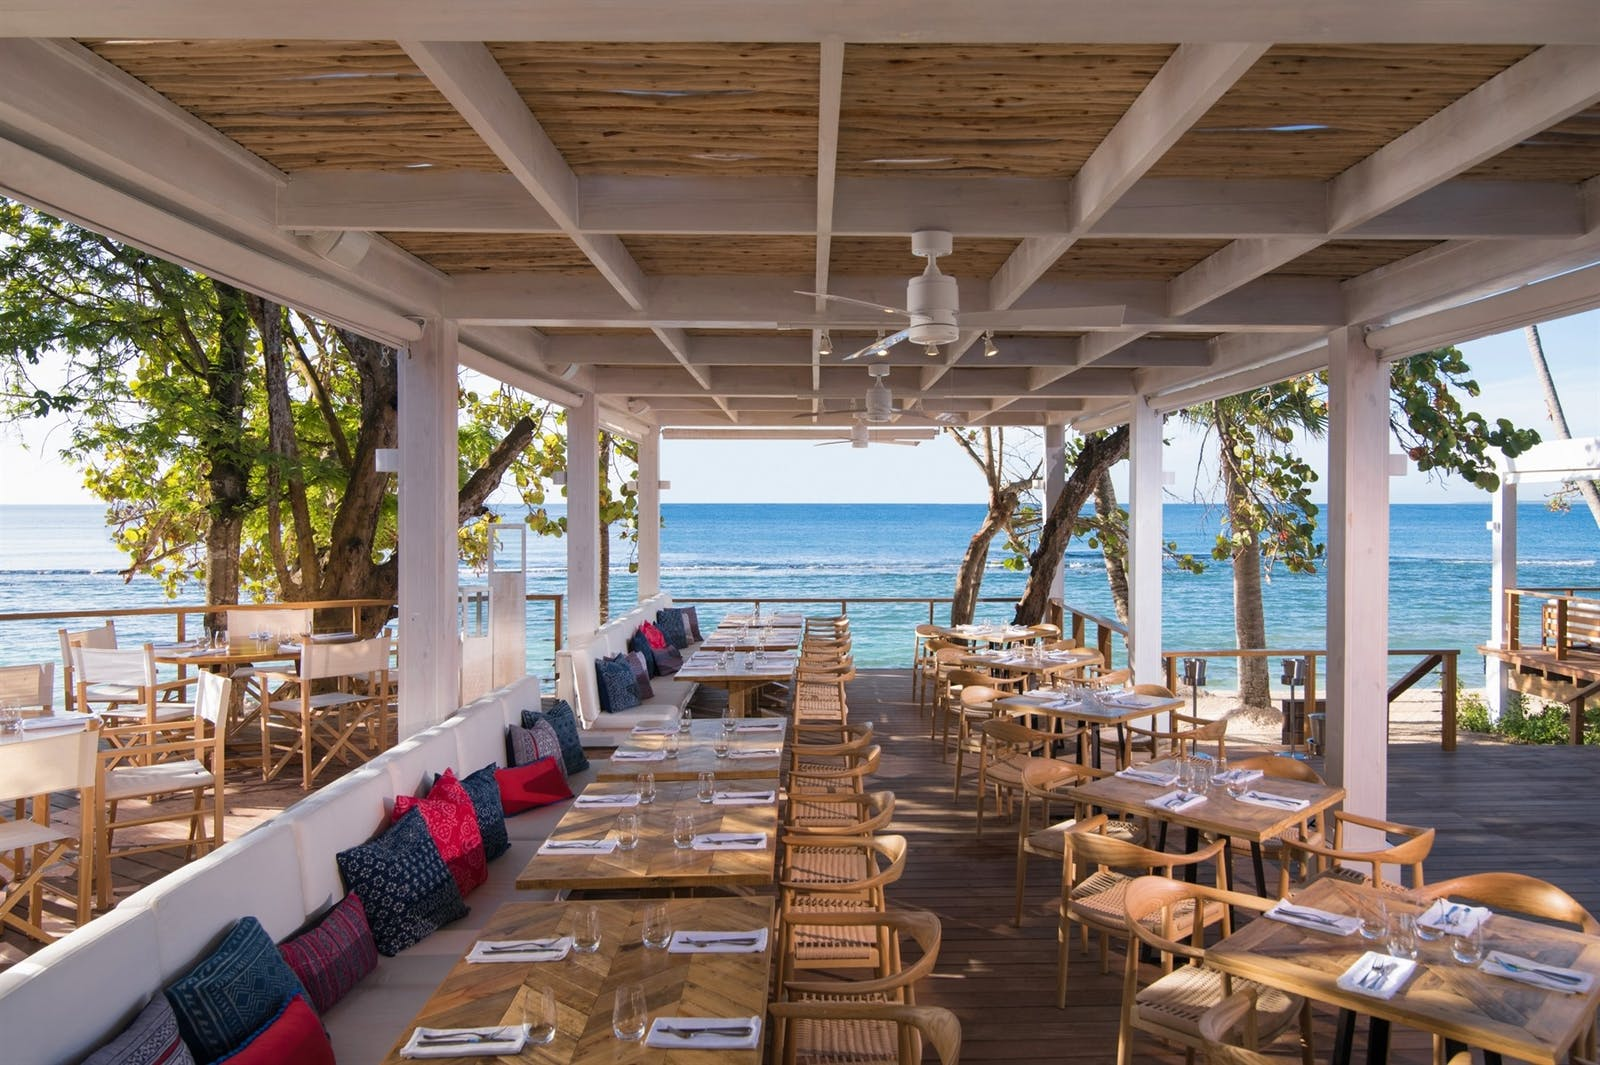 Minitas Restaurant at Casa De Campo Resort & Villas, Dominican Republic, Caribbean